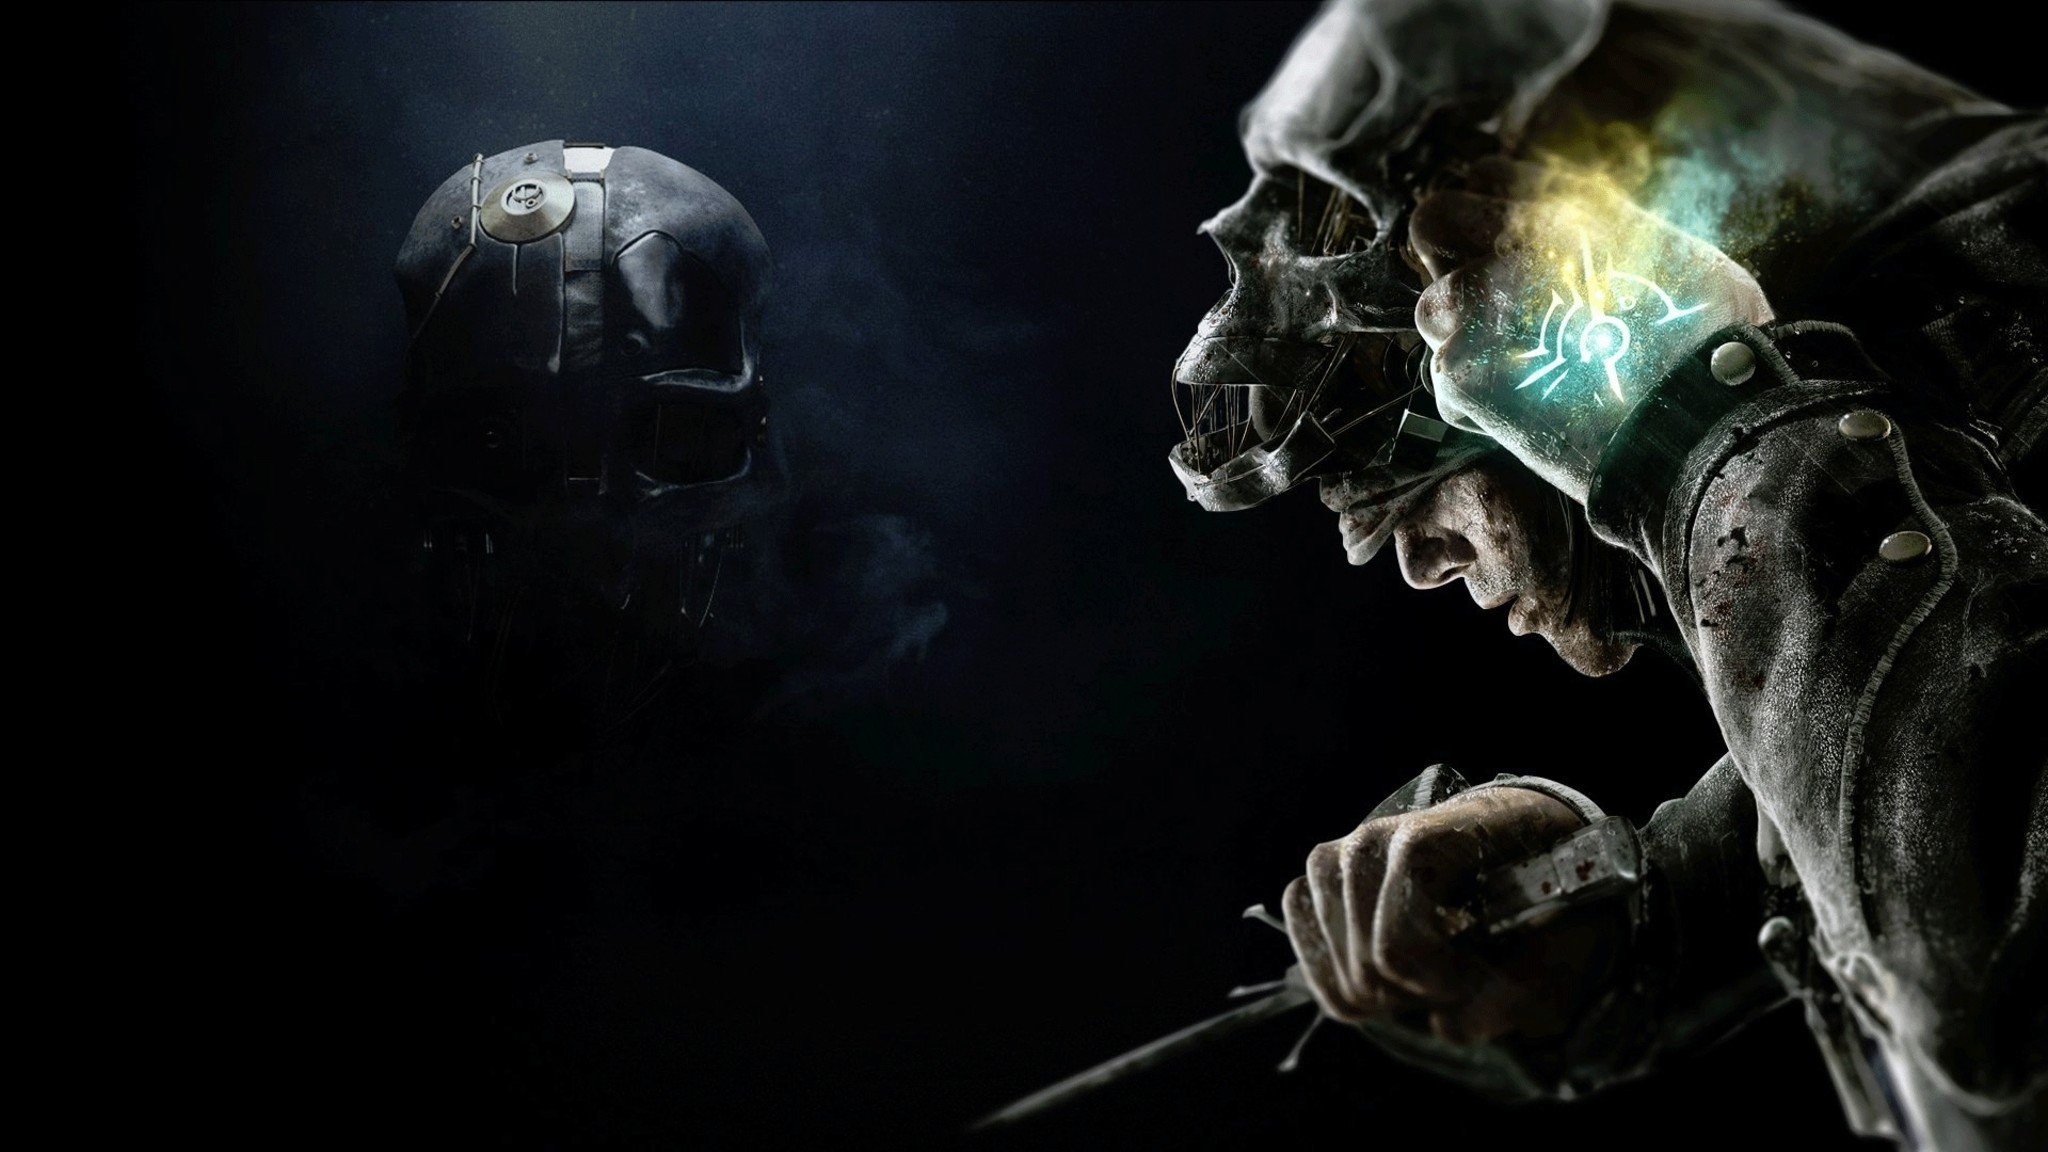 Download Dishonored 2 PC Game HD wallpaper In Screen .